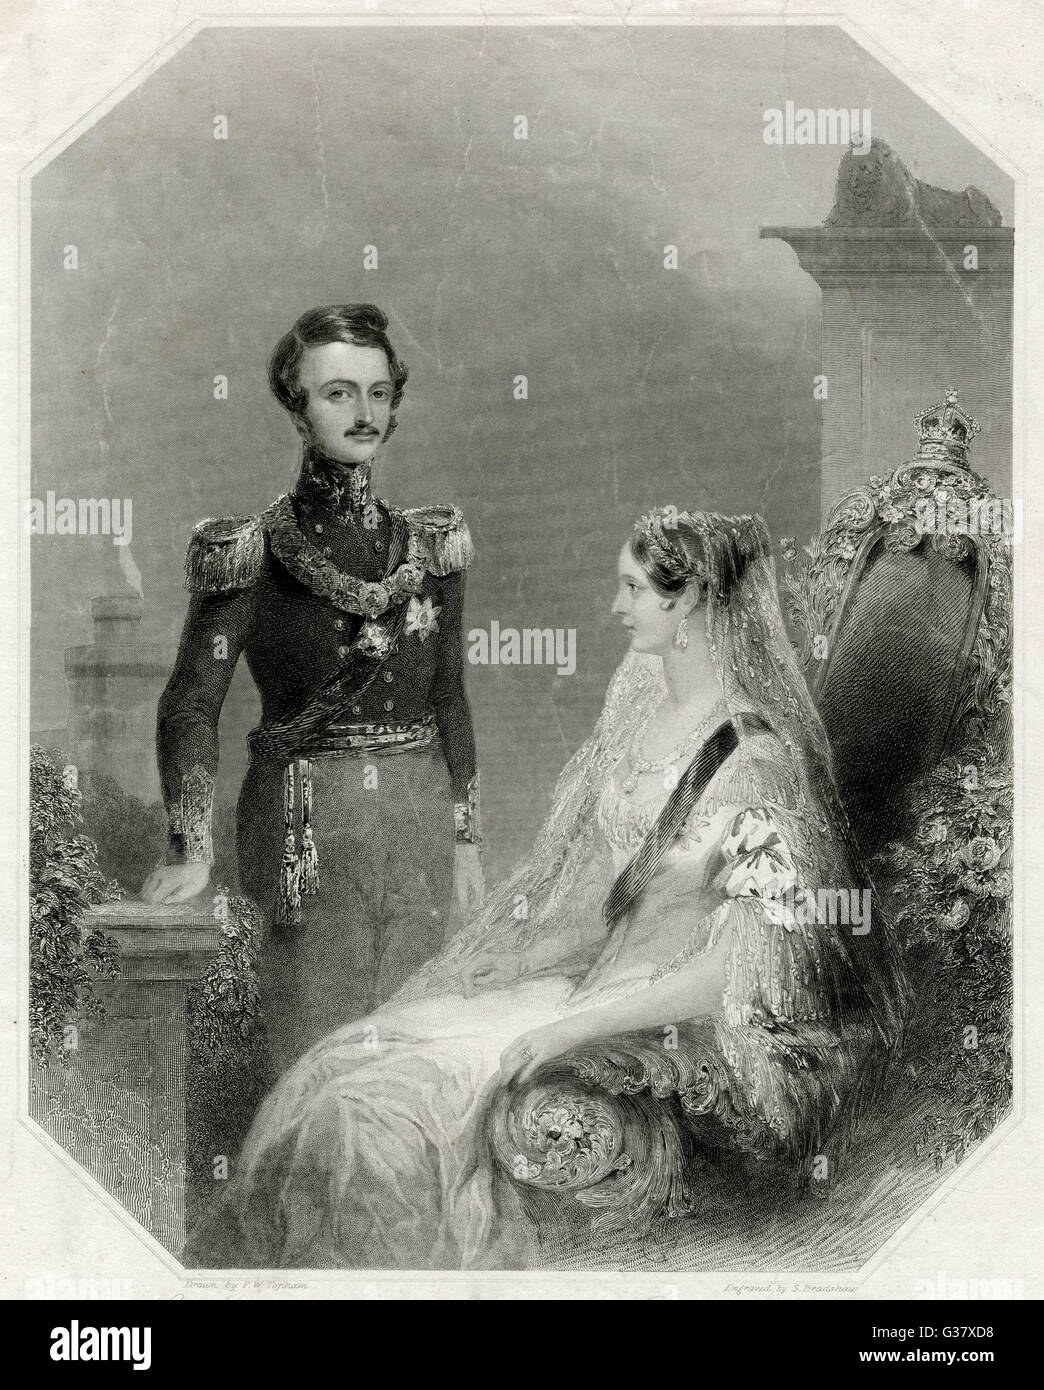 QUEEN VICTORIA BRITISH ROYALTY  Victoria and Albert at the  time of their wedding.       Date: 1840 - Stock Image